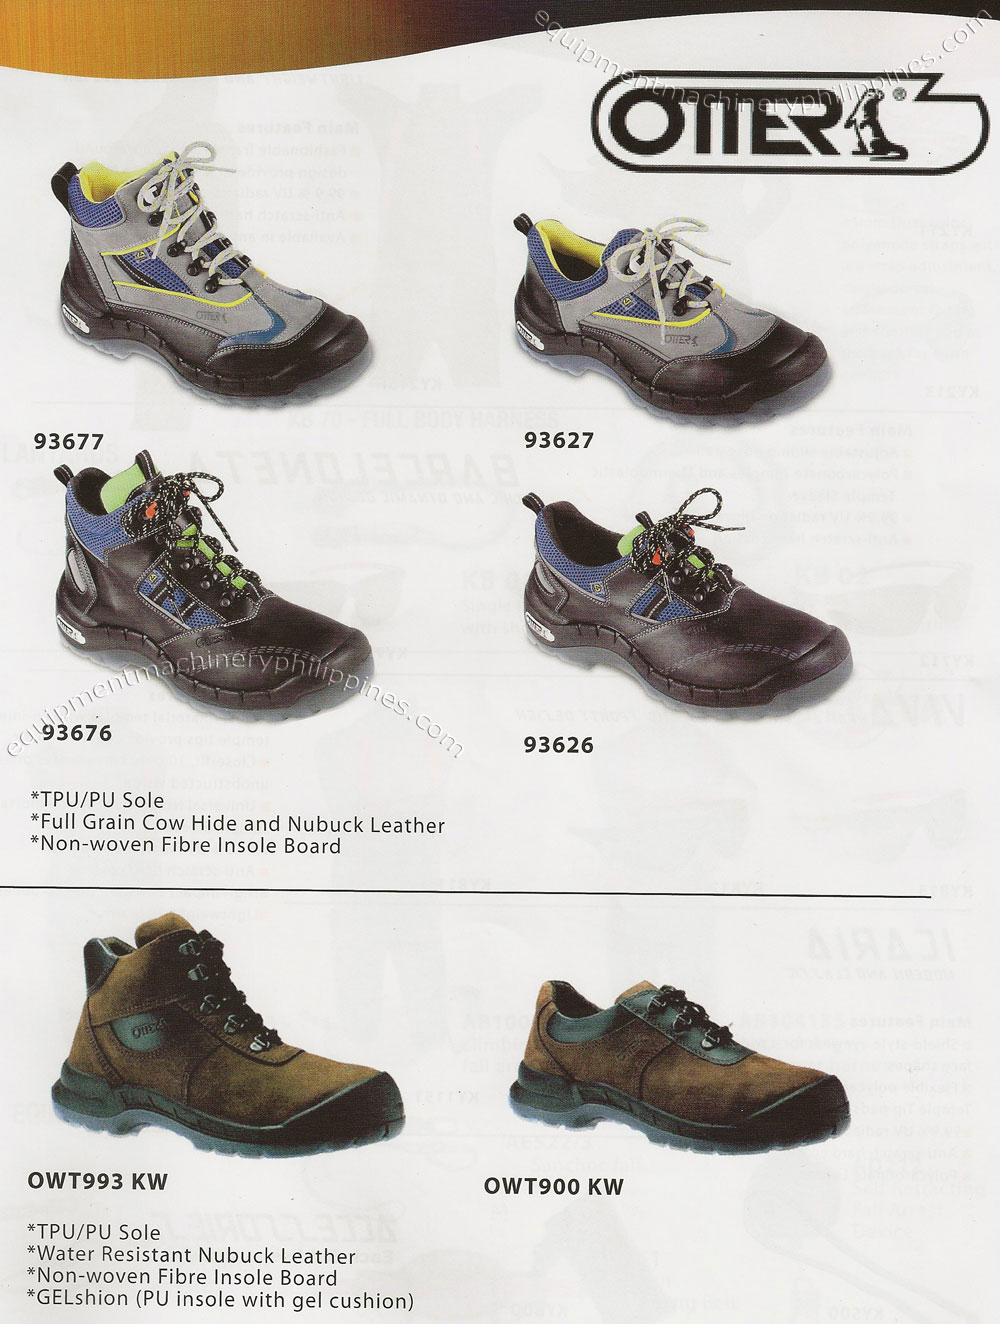 Otter Safety Shoes Philippines